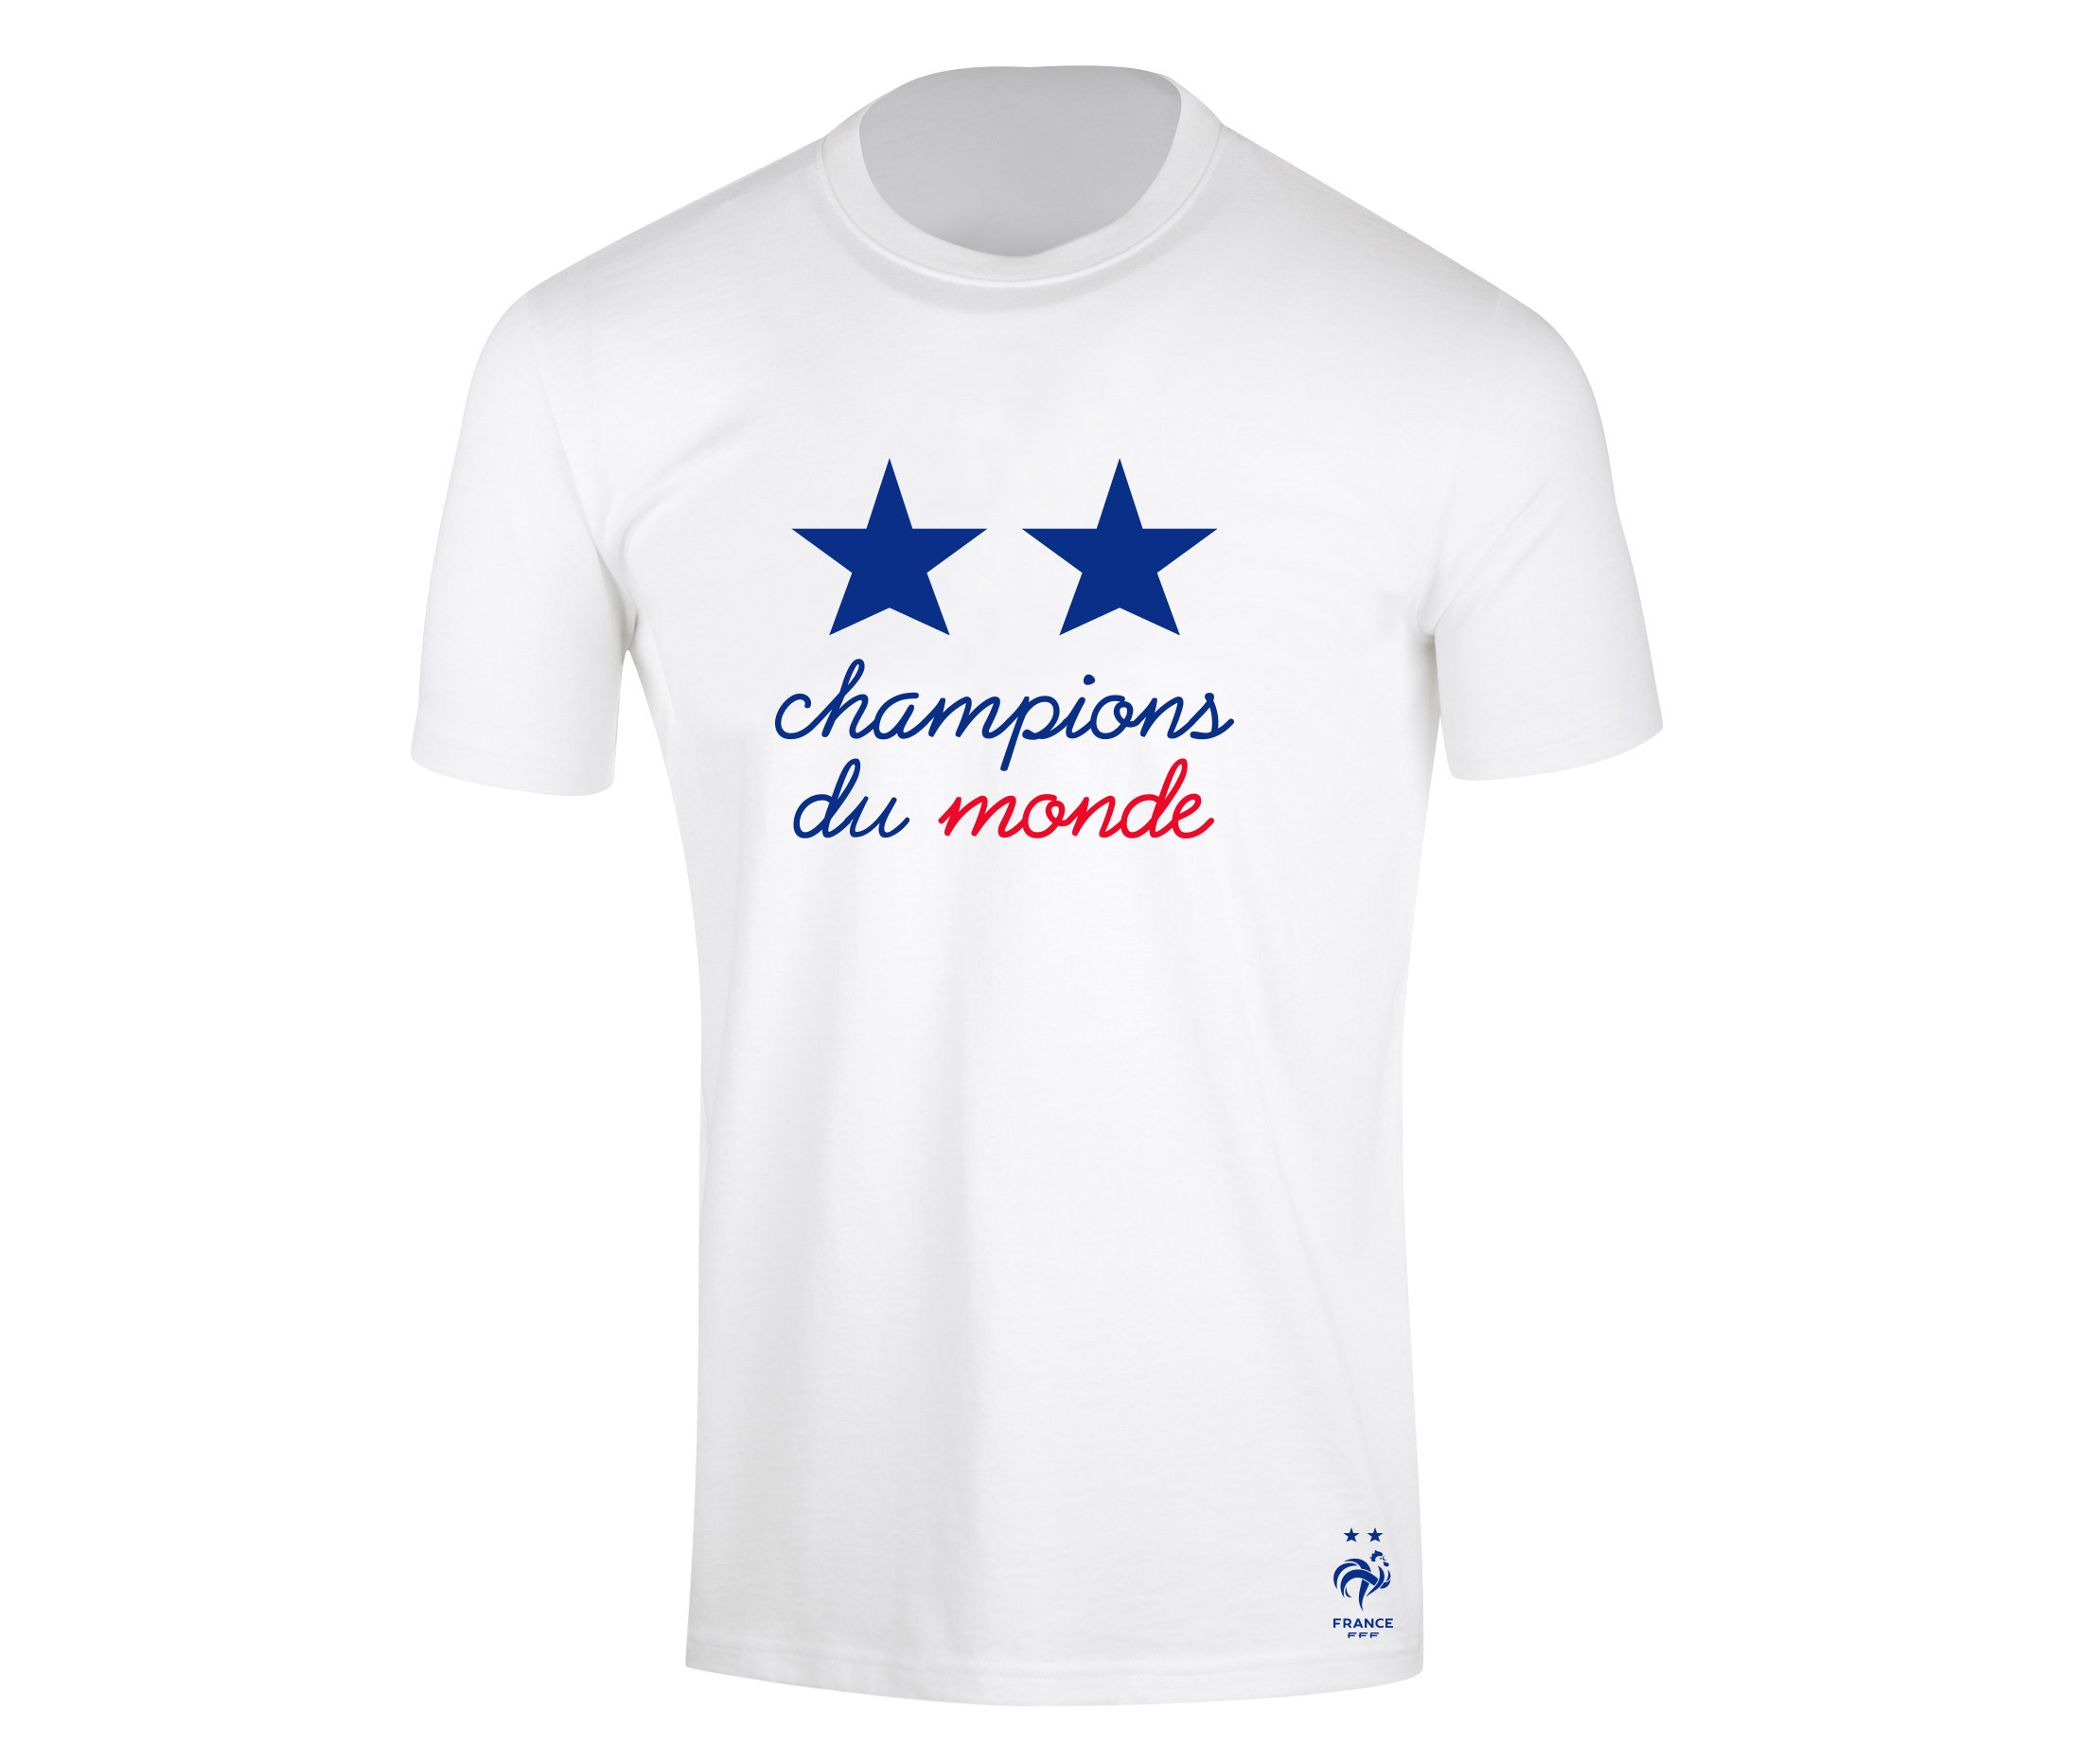 19,90€, le prix du t-shirt collector